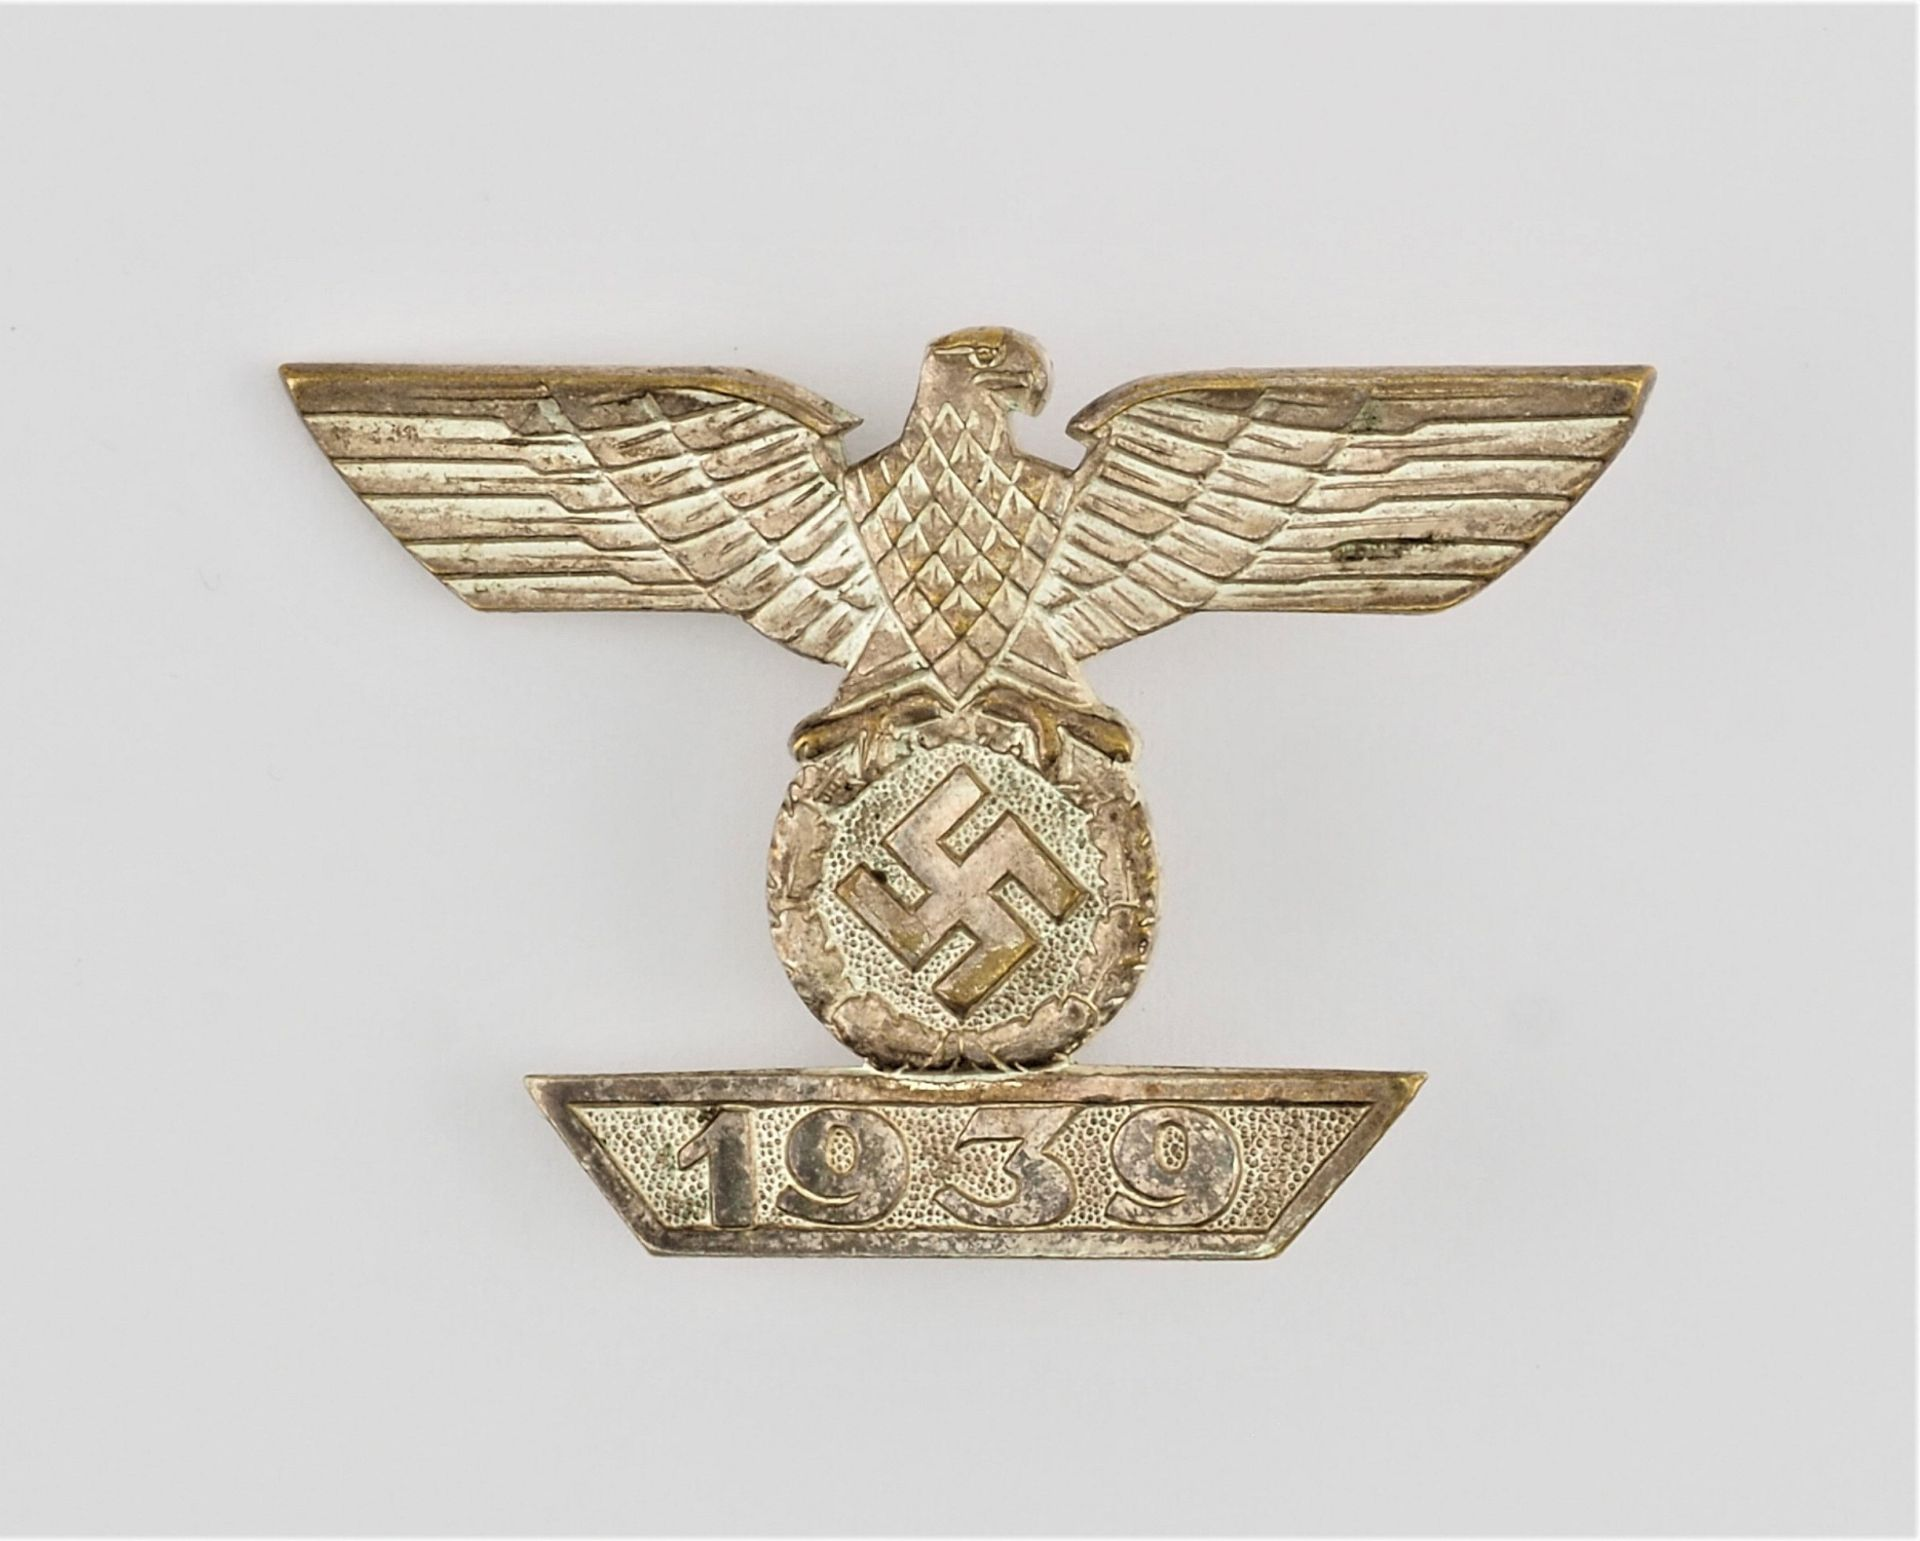 World War 2, Third Reich, Medals & Decorations Legacy: Commanding General of the Luftwaffe (Wehrmac - Image 25 of 27